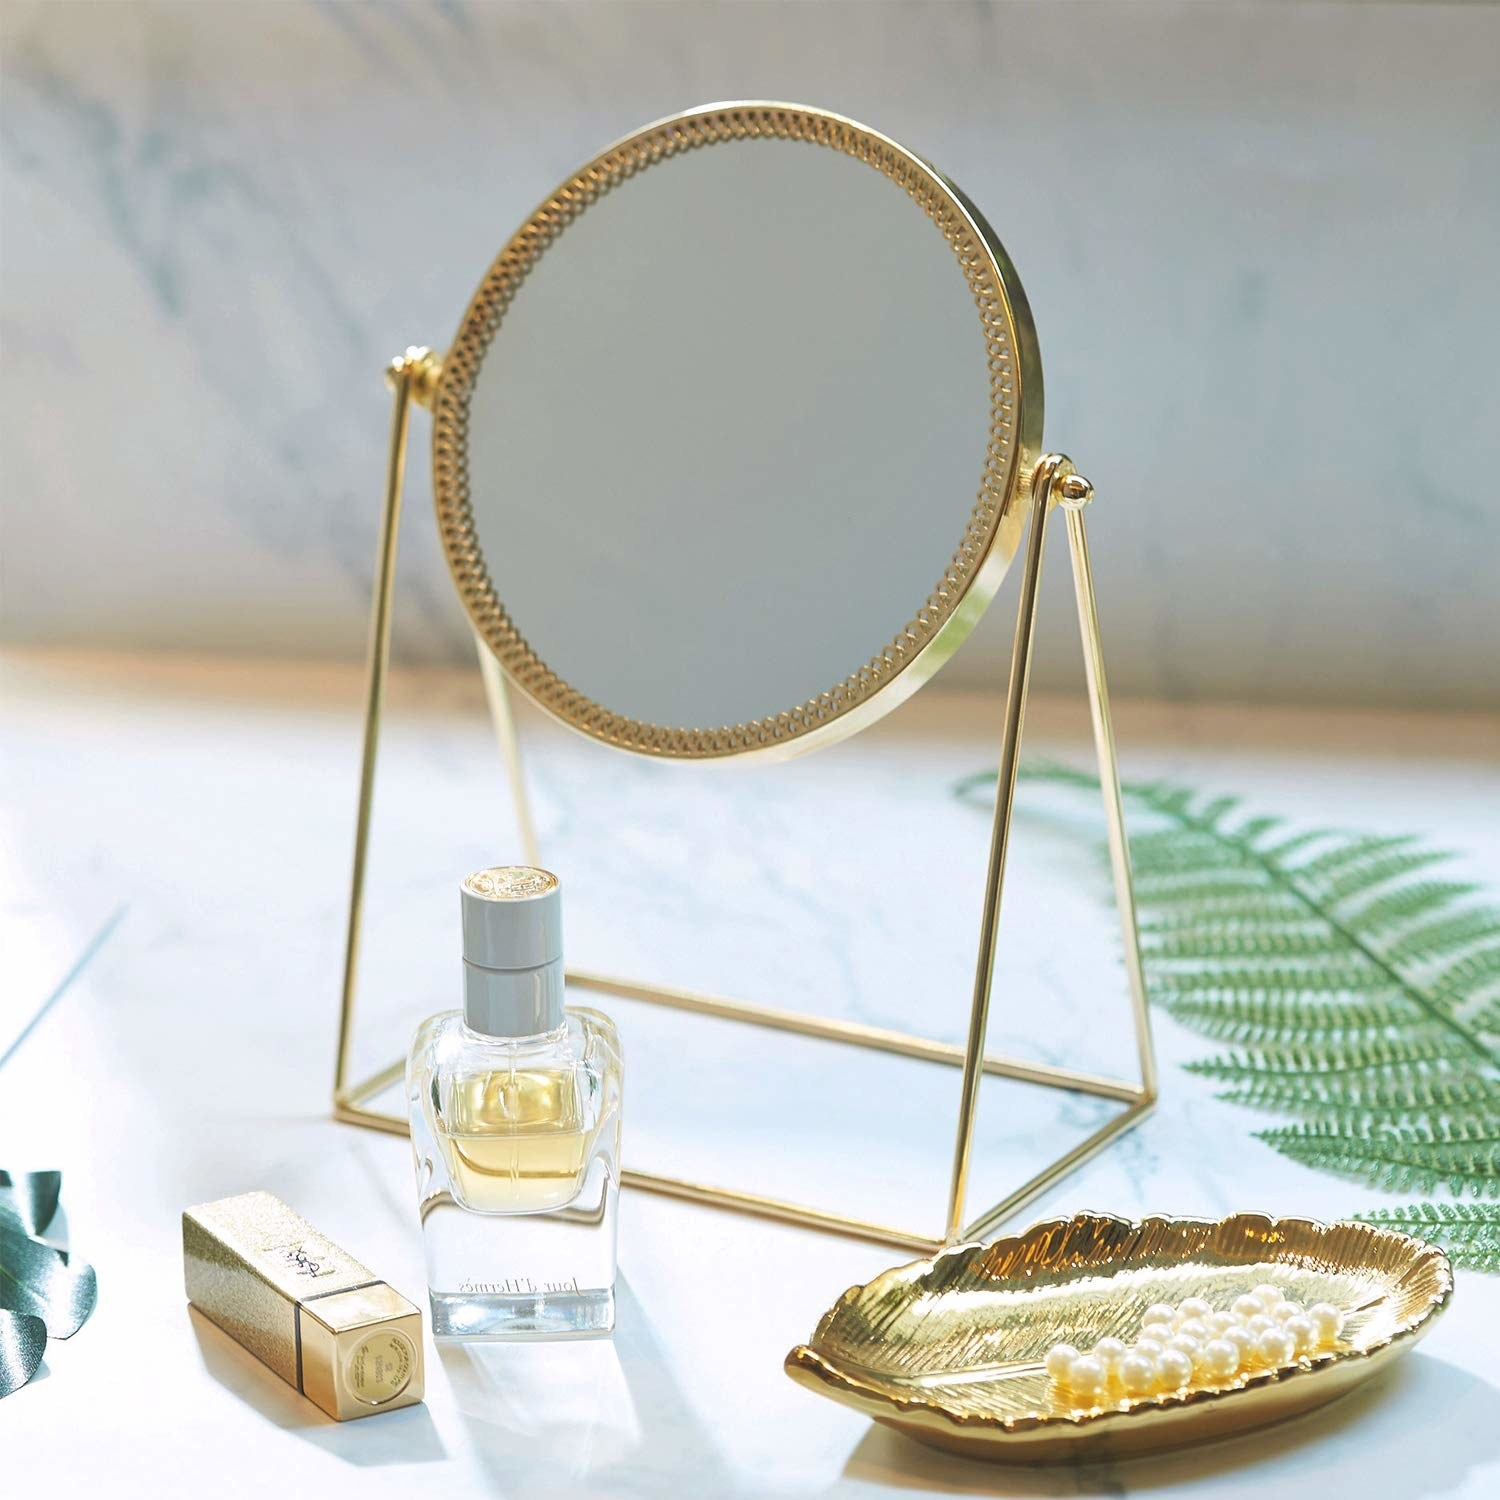 the gold mirror